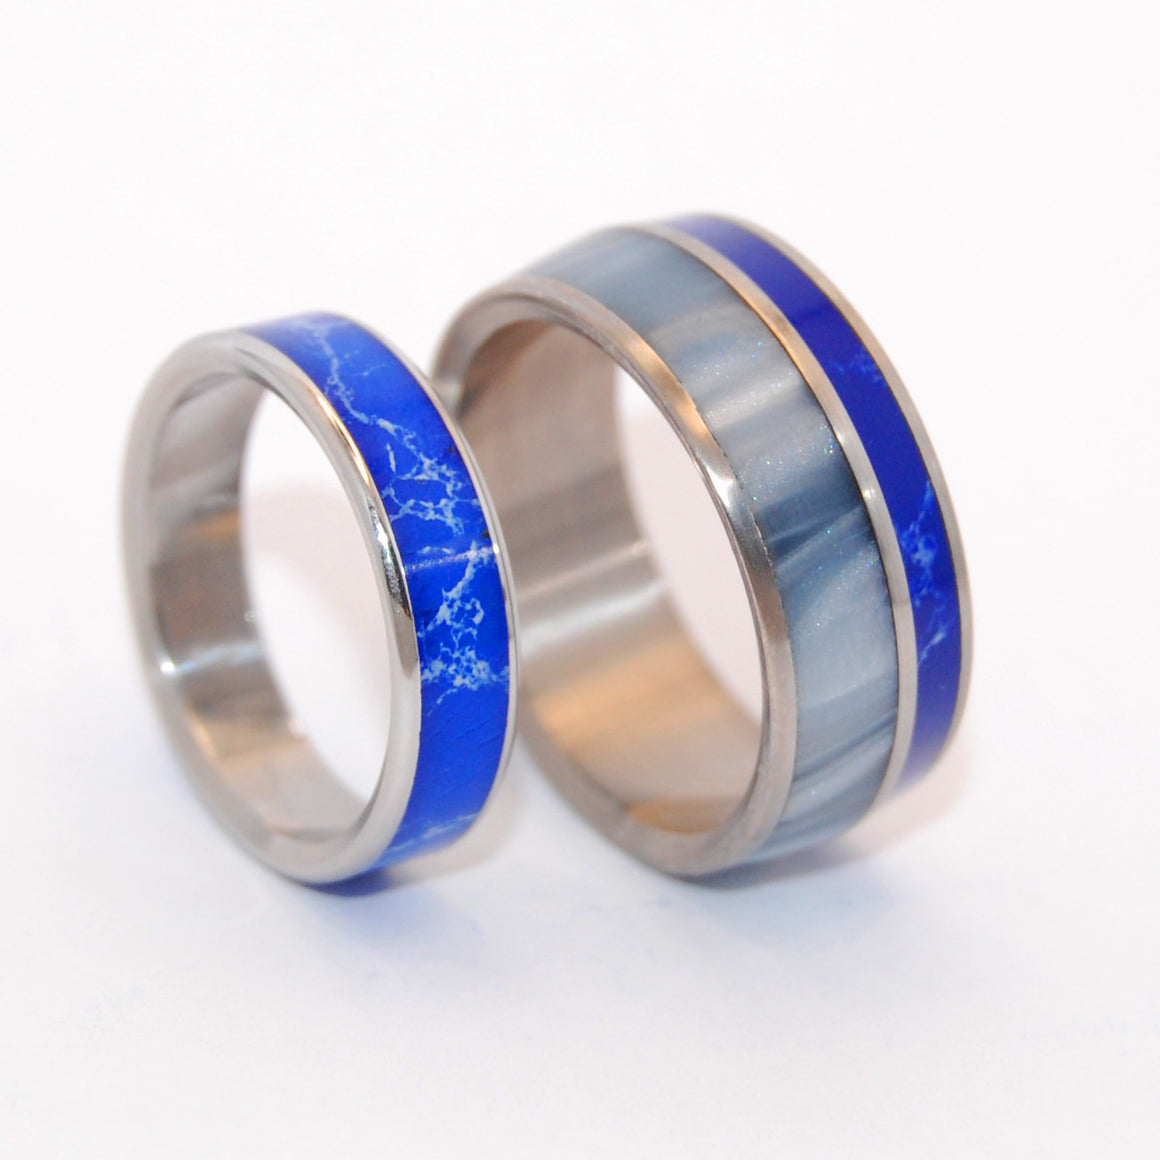 We'll Always Be Where Blue Stars Shine | Stone and Titanium Wedding Ring Set